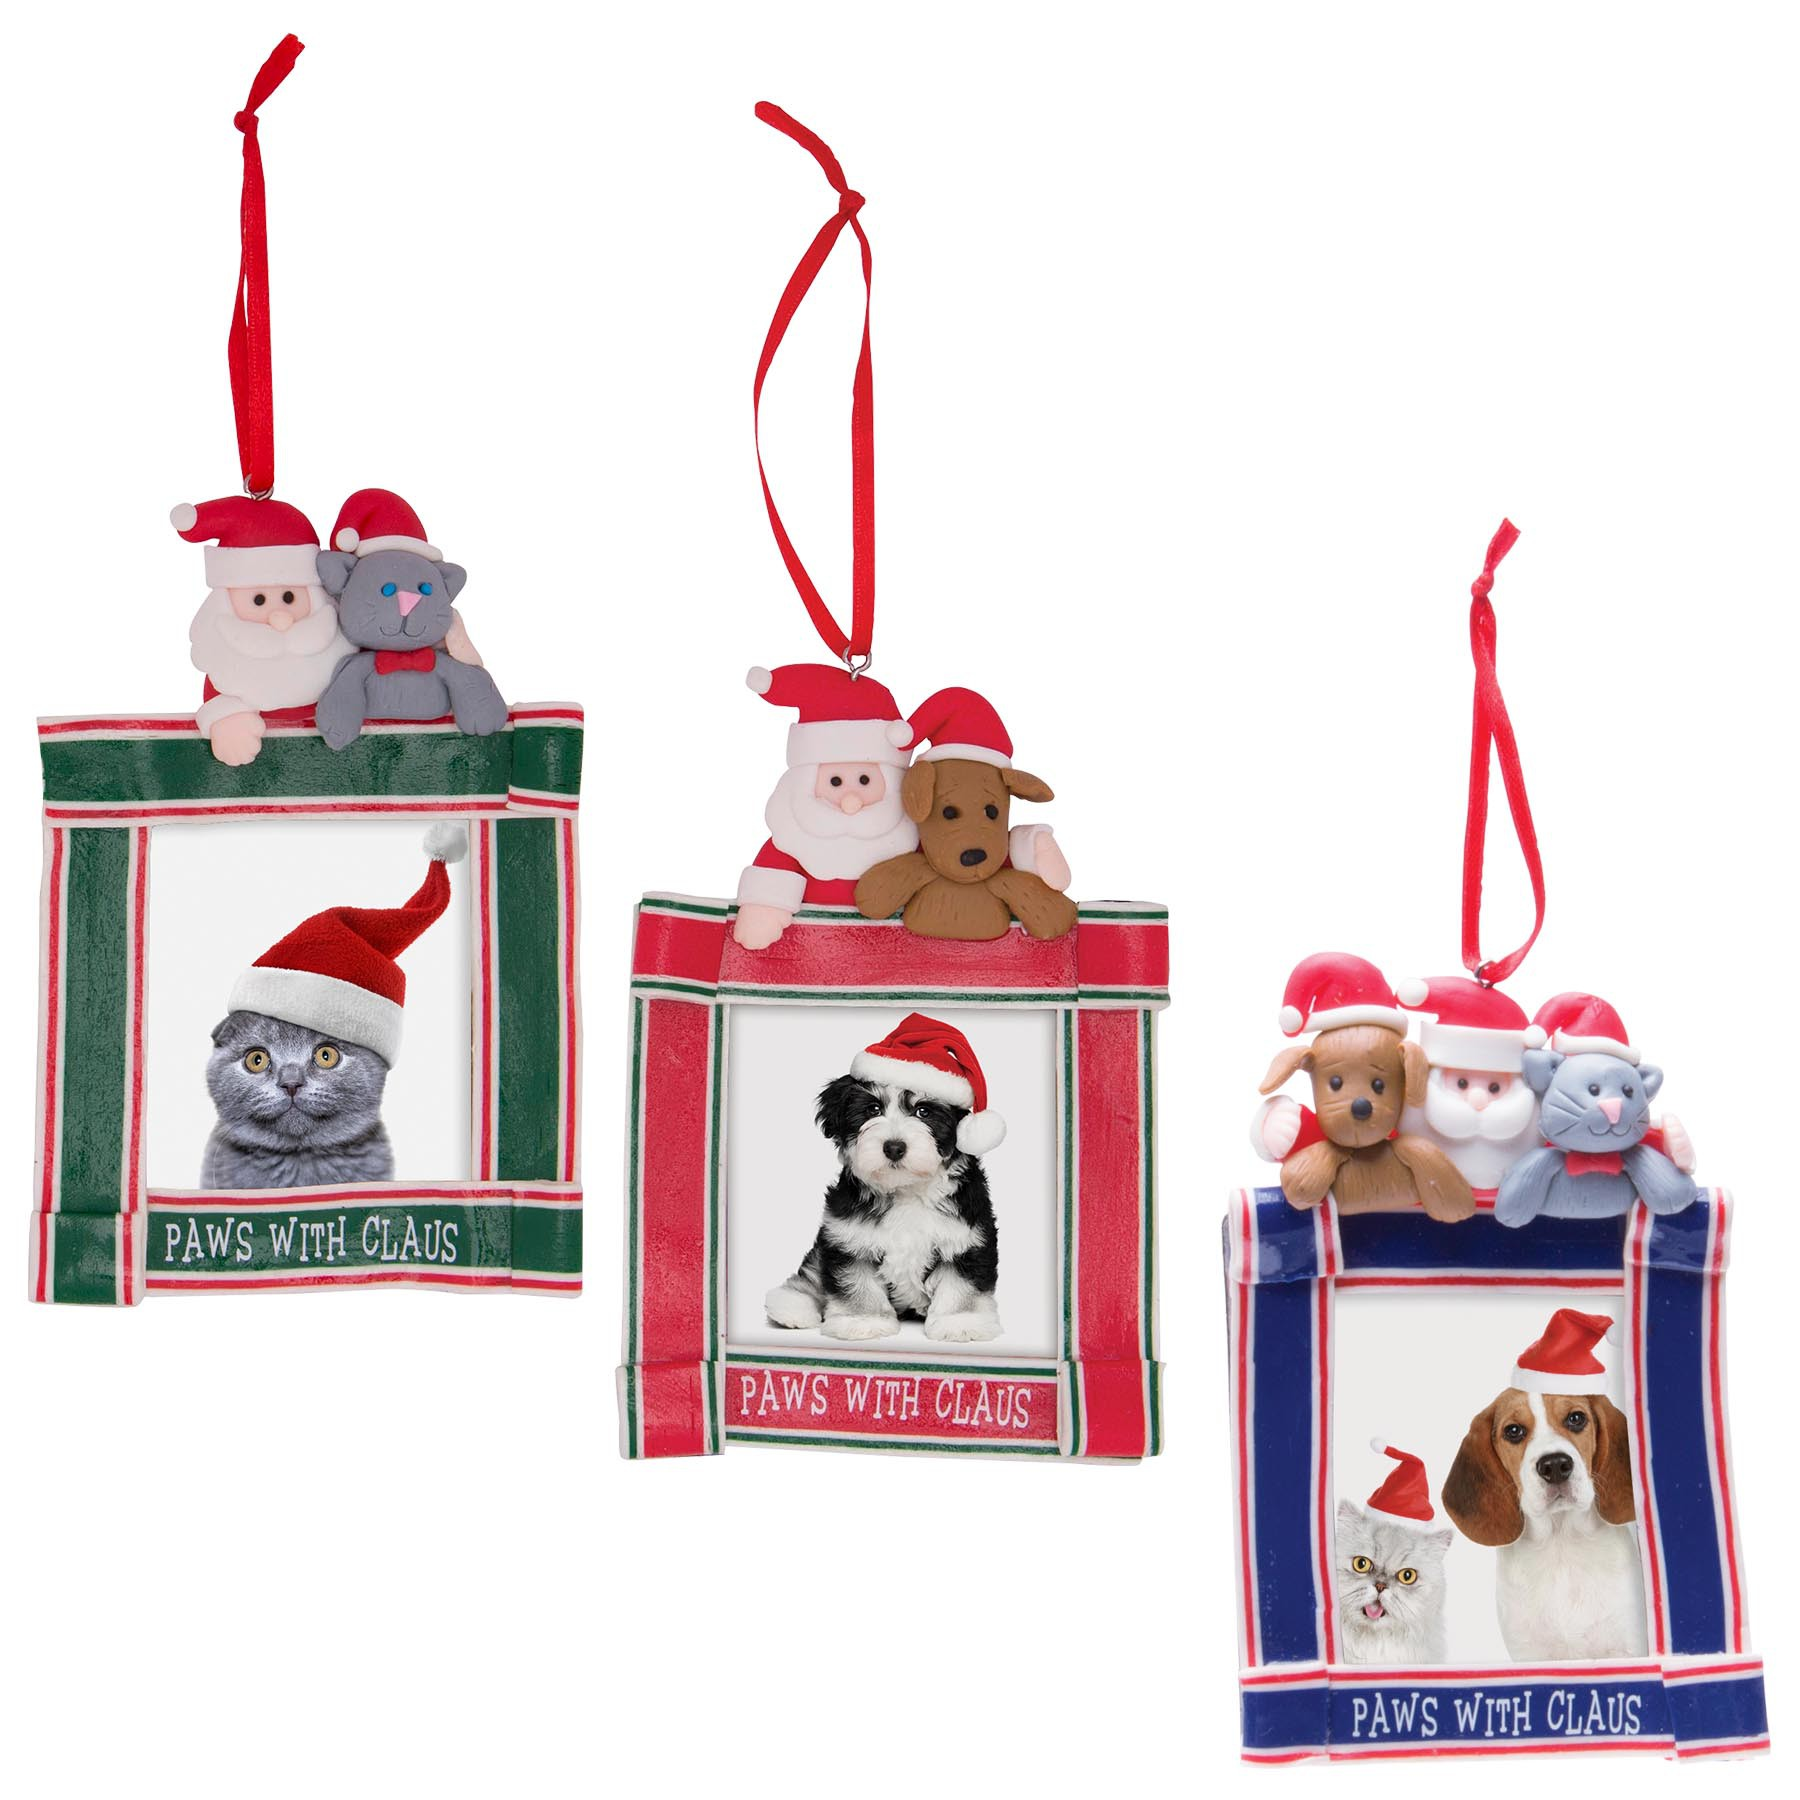 Clay Dough Paws with Claus Ornaments